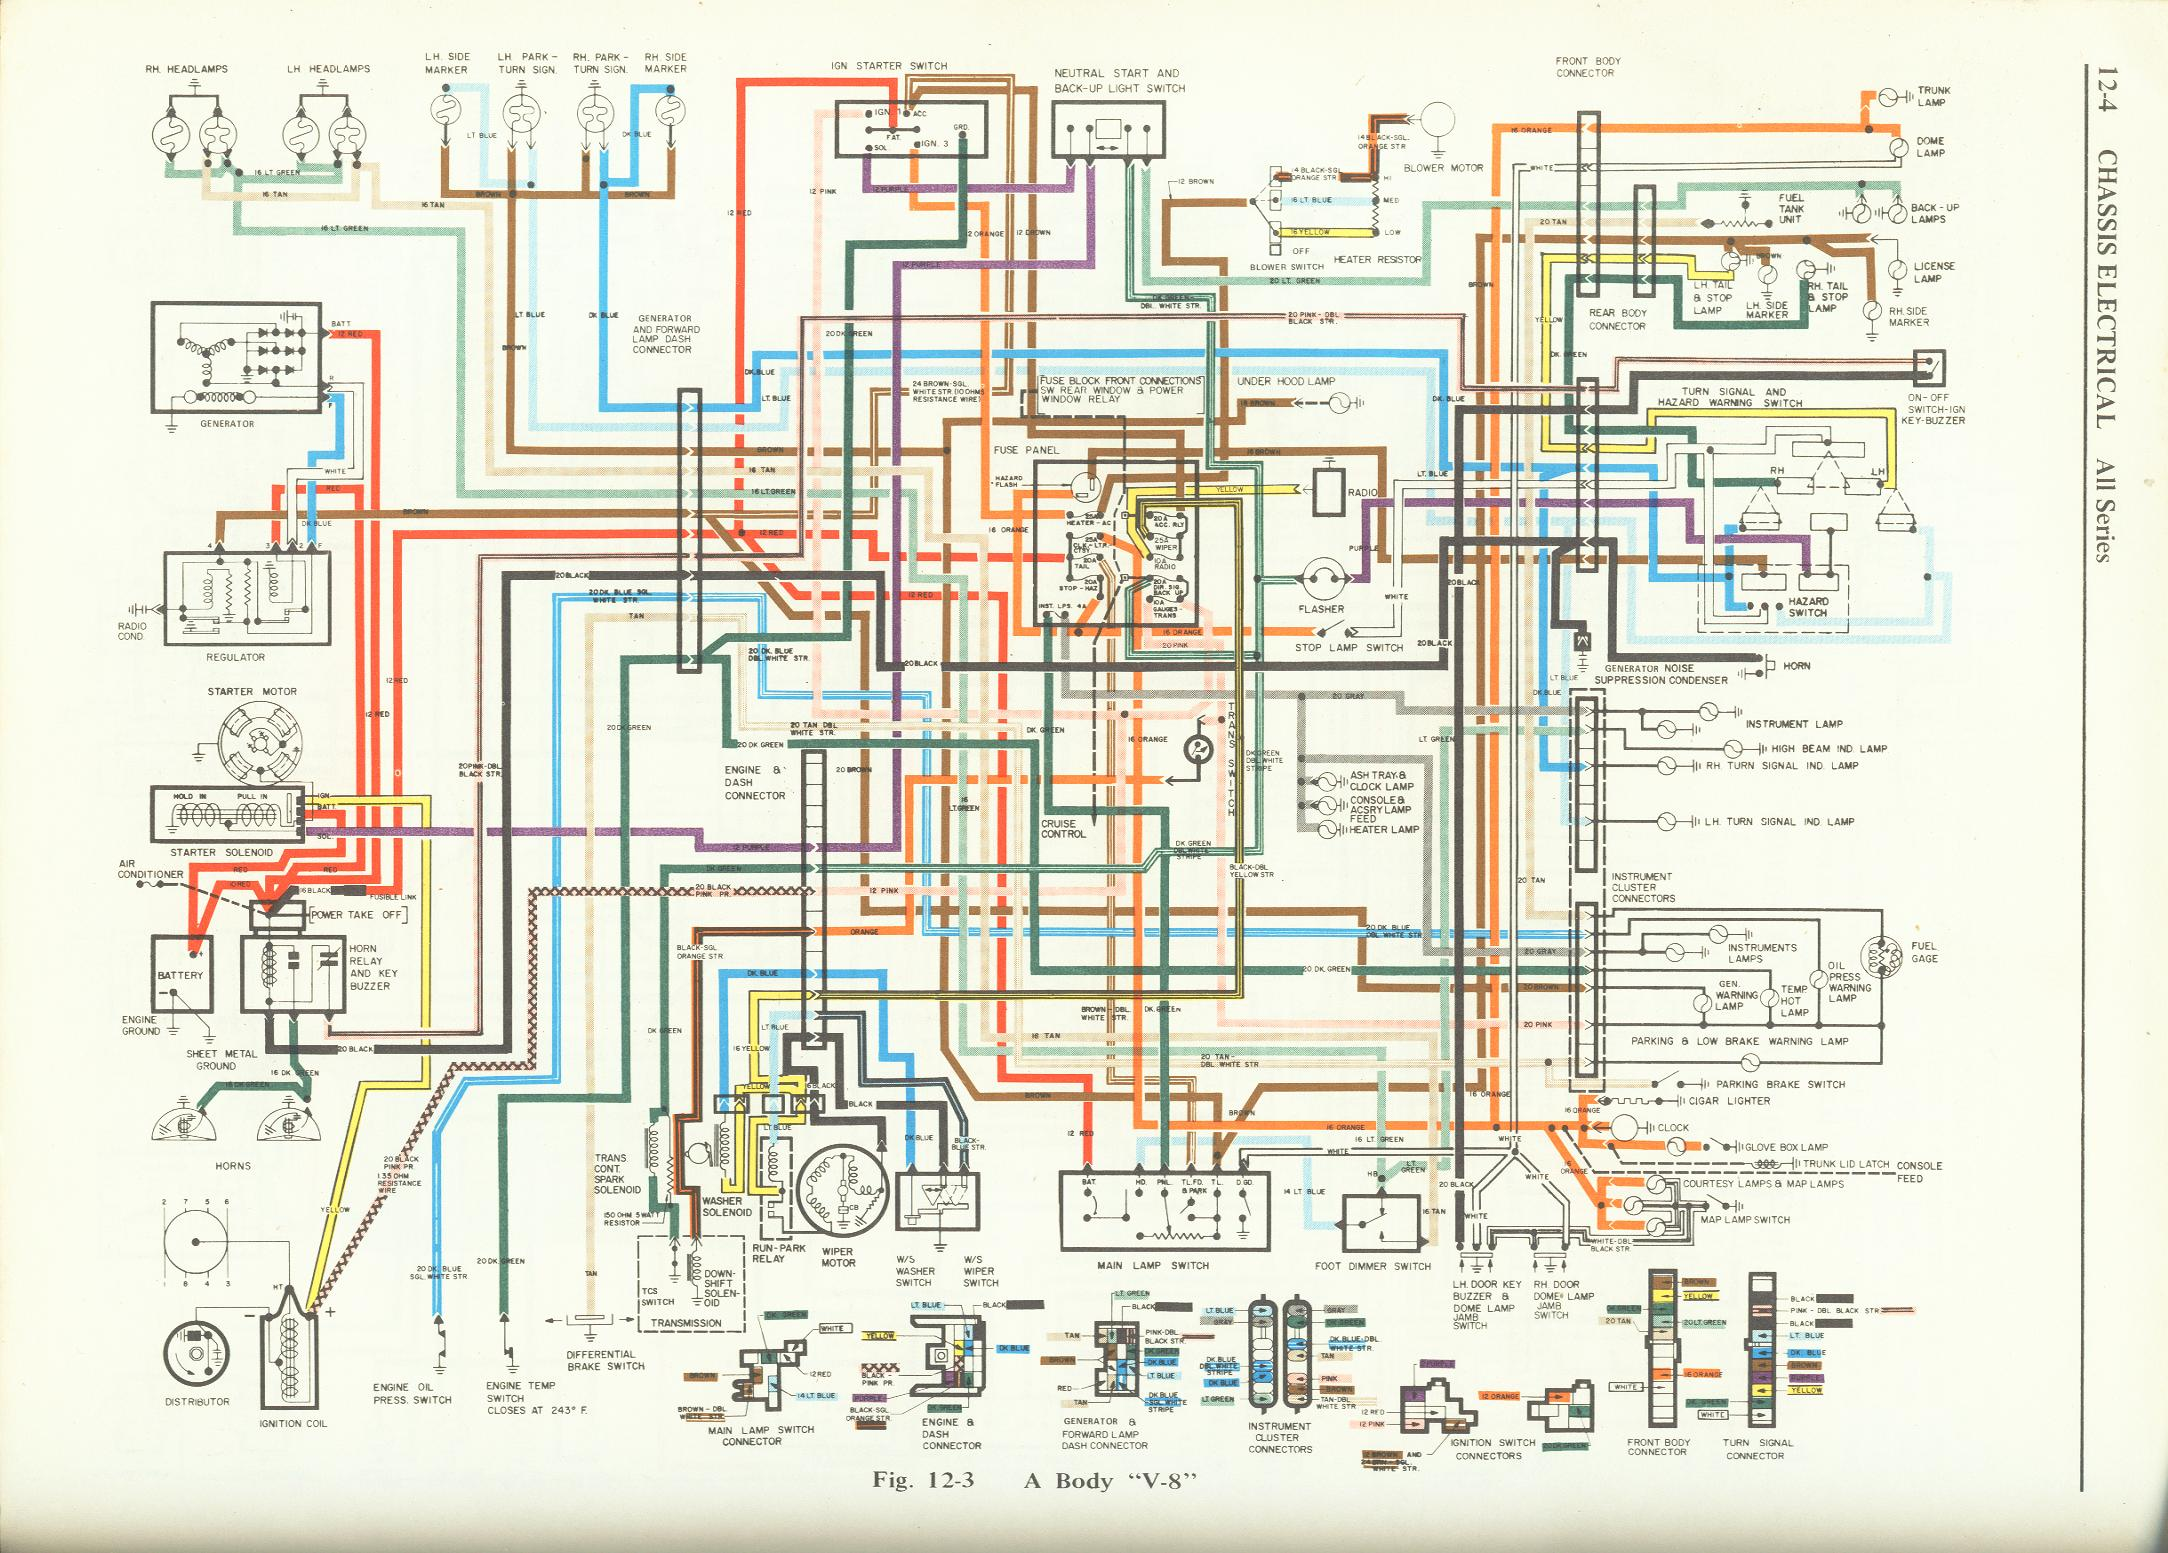 Chevelle Wiring Harness Diagram Wiring Diagram Authority Authority Lechicchedimammavale It